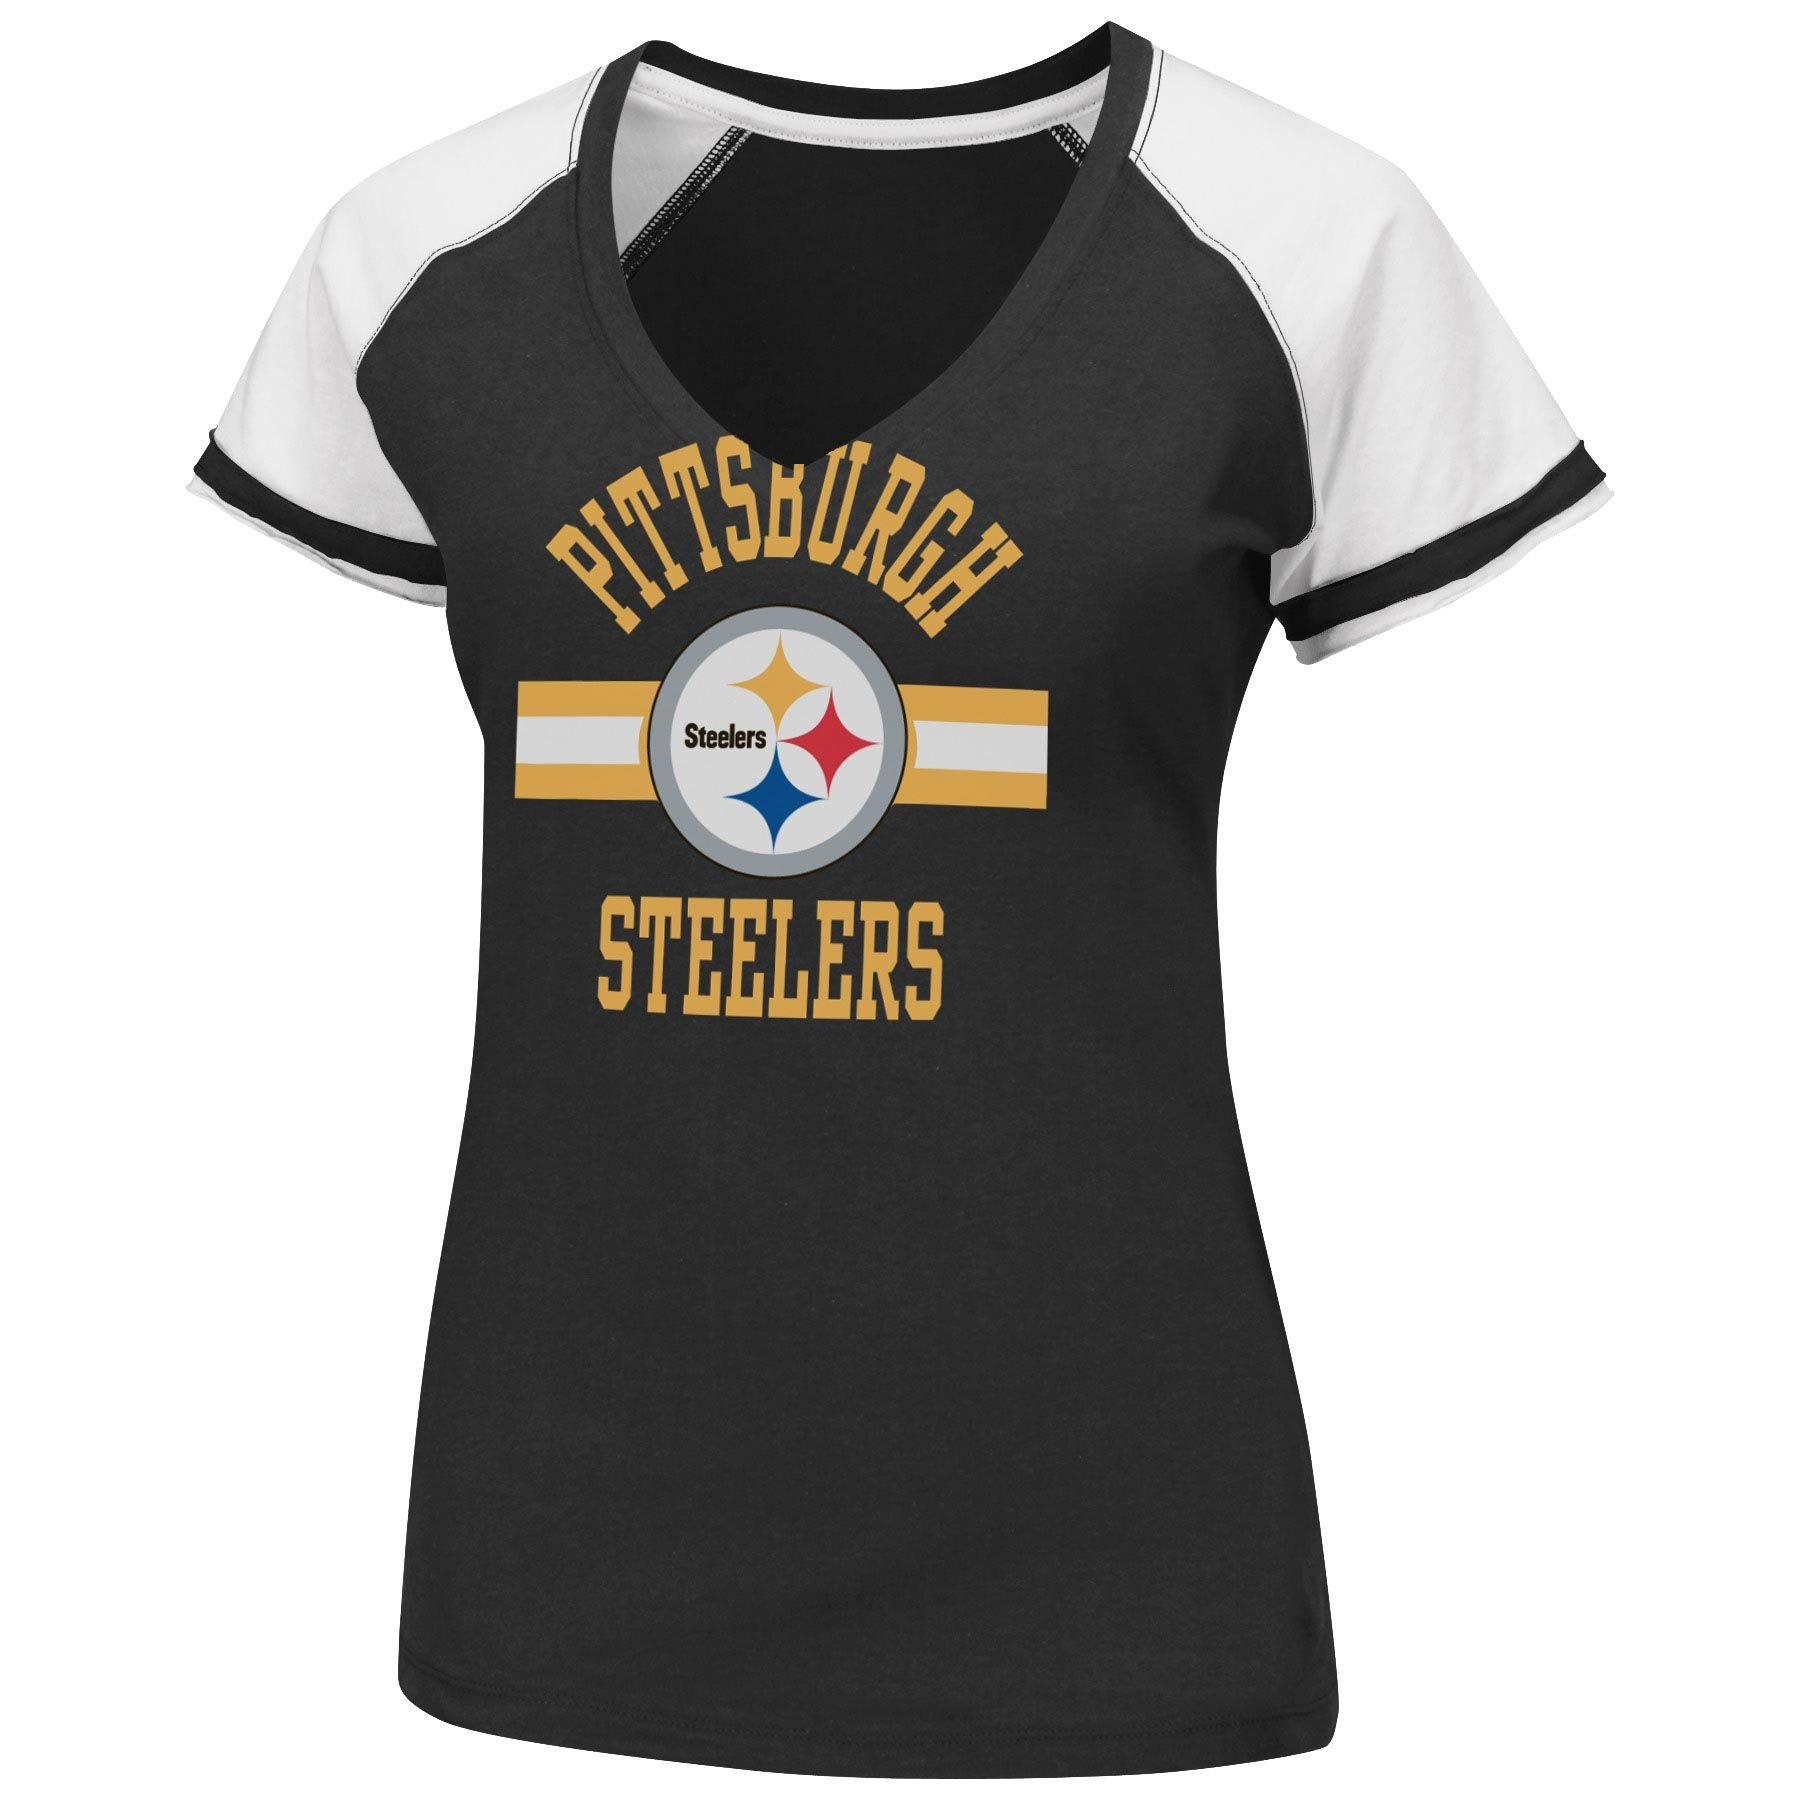 steelers jersey canada